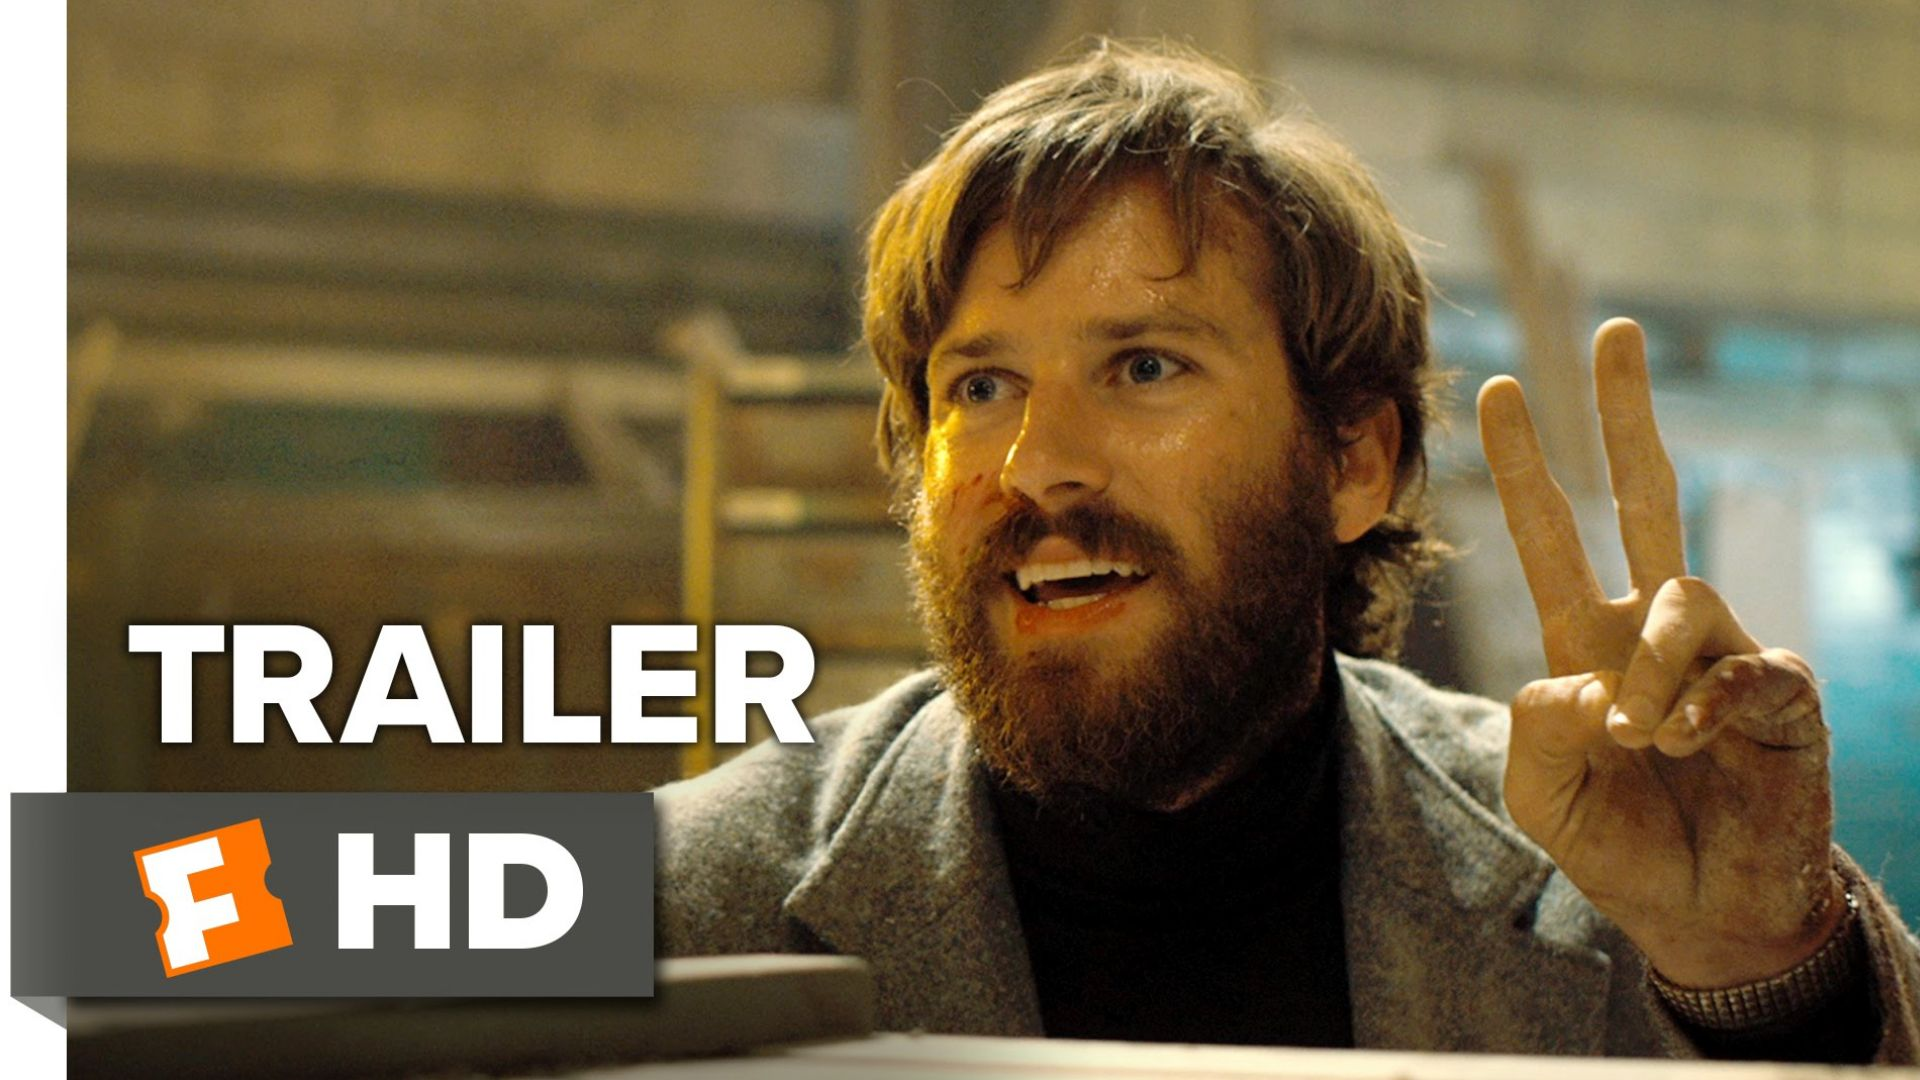 Check out the 'Free Fire' Red Band Trailer. Starring Shralto